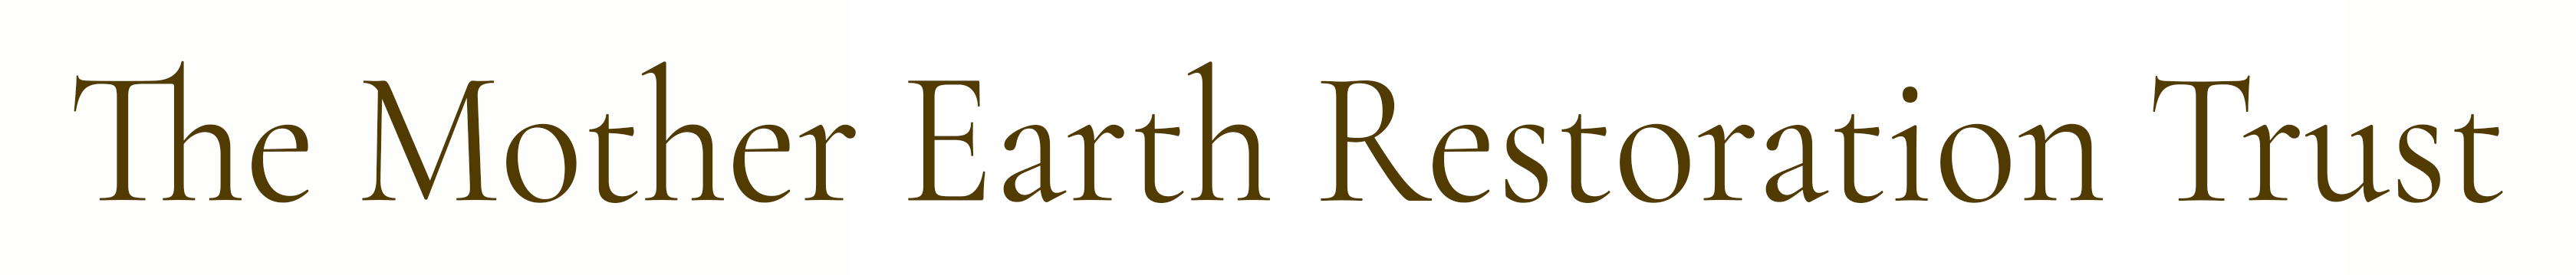 The Mother Earth Restoration Trust